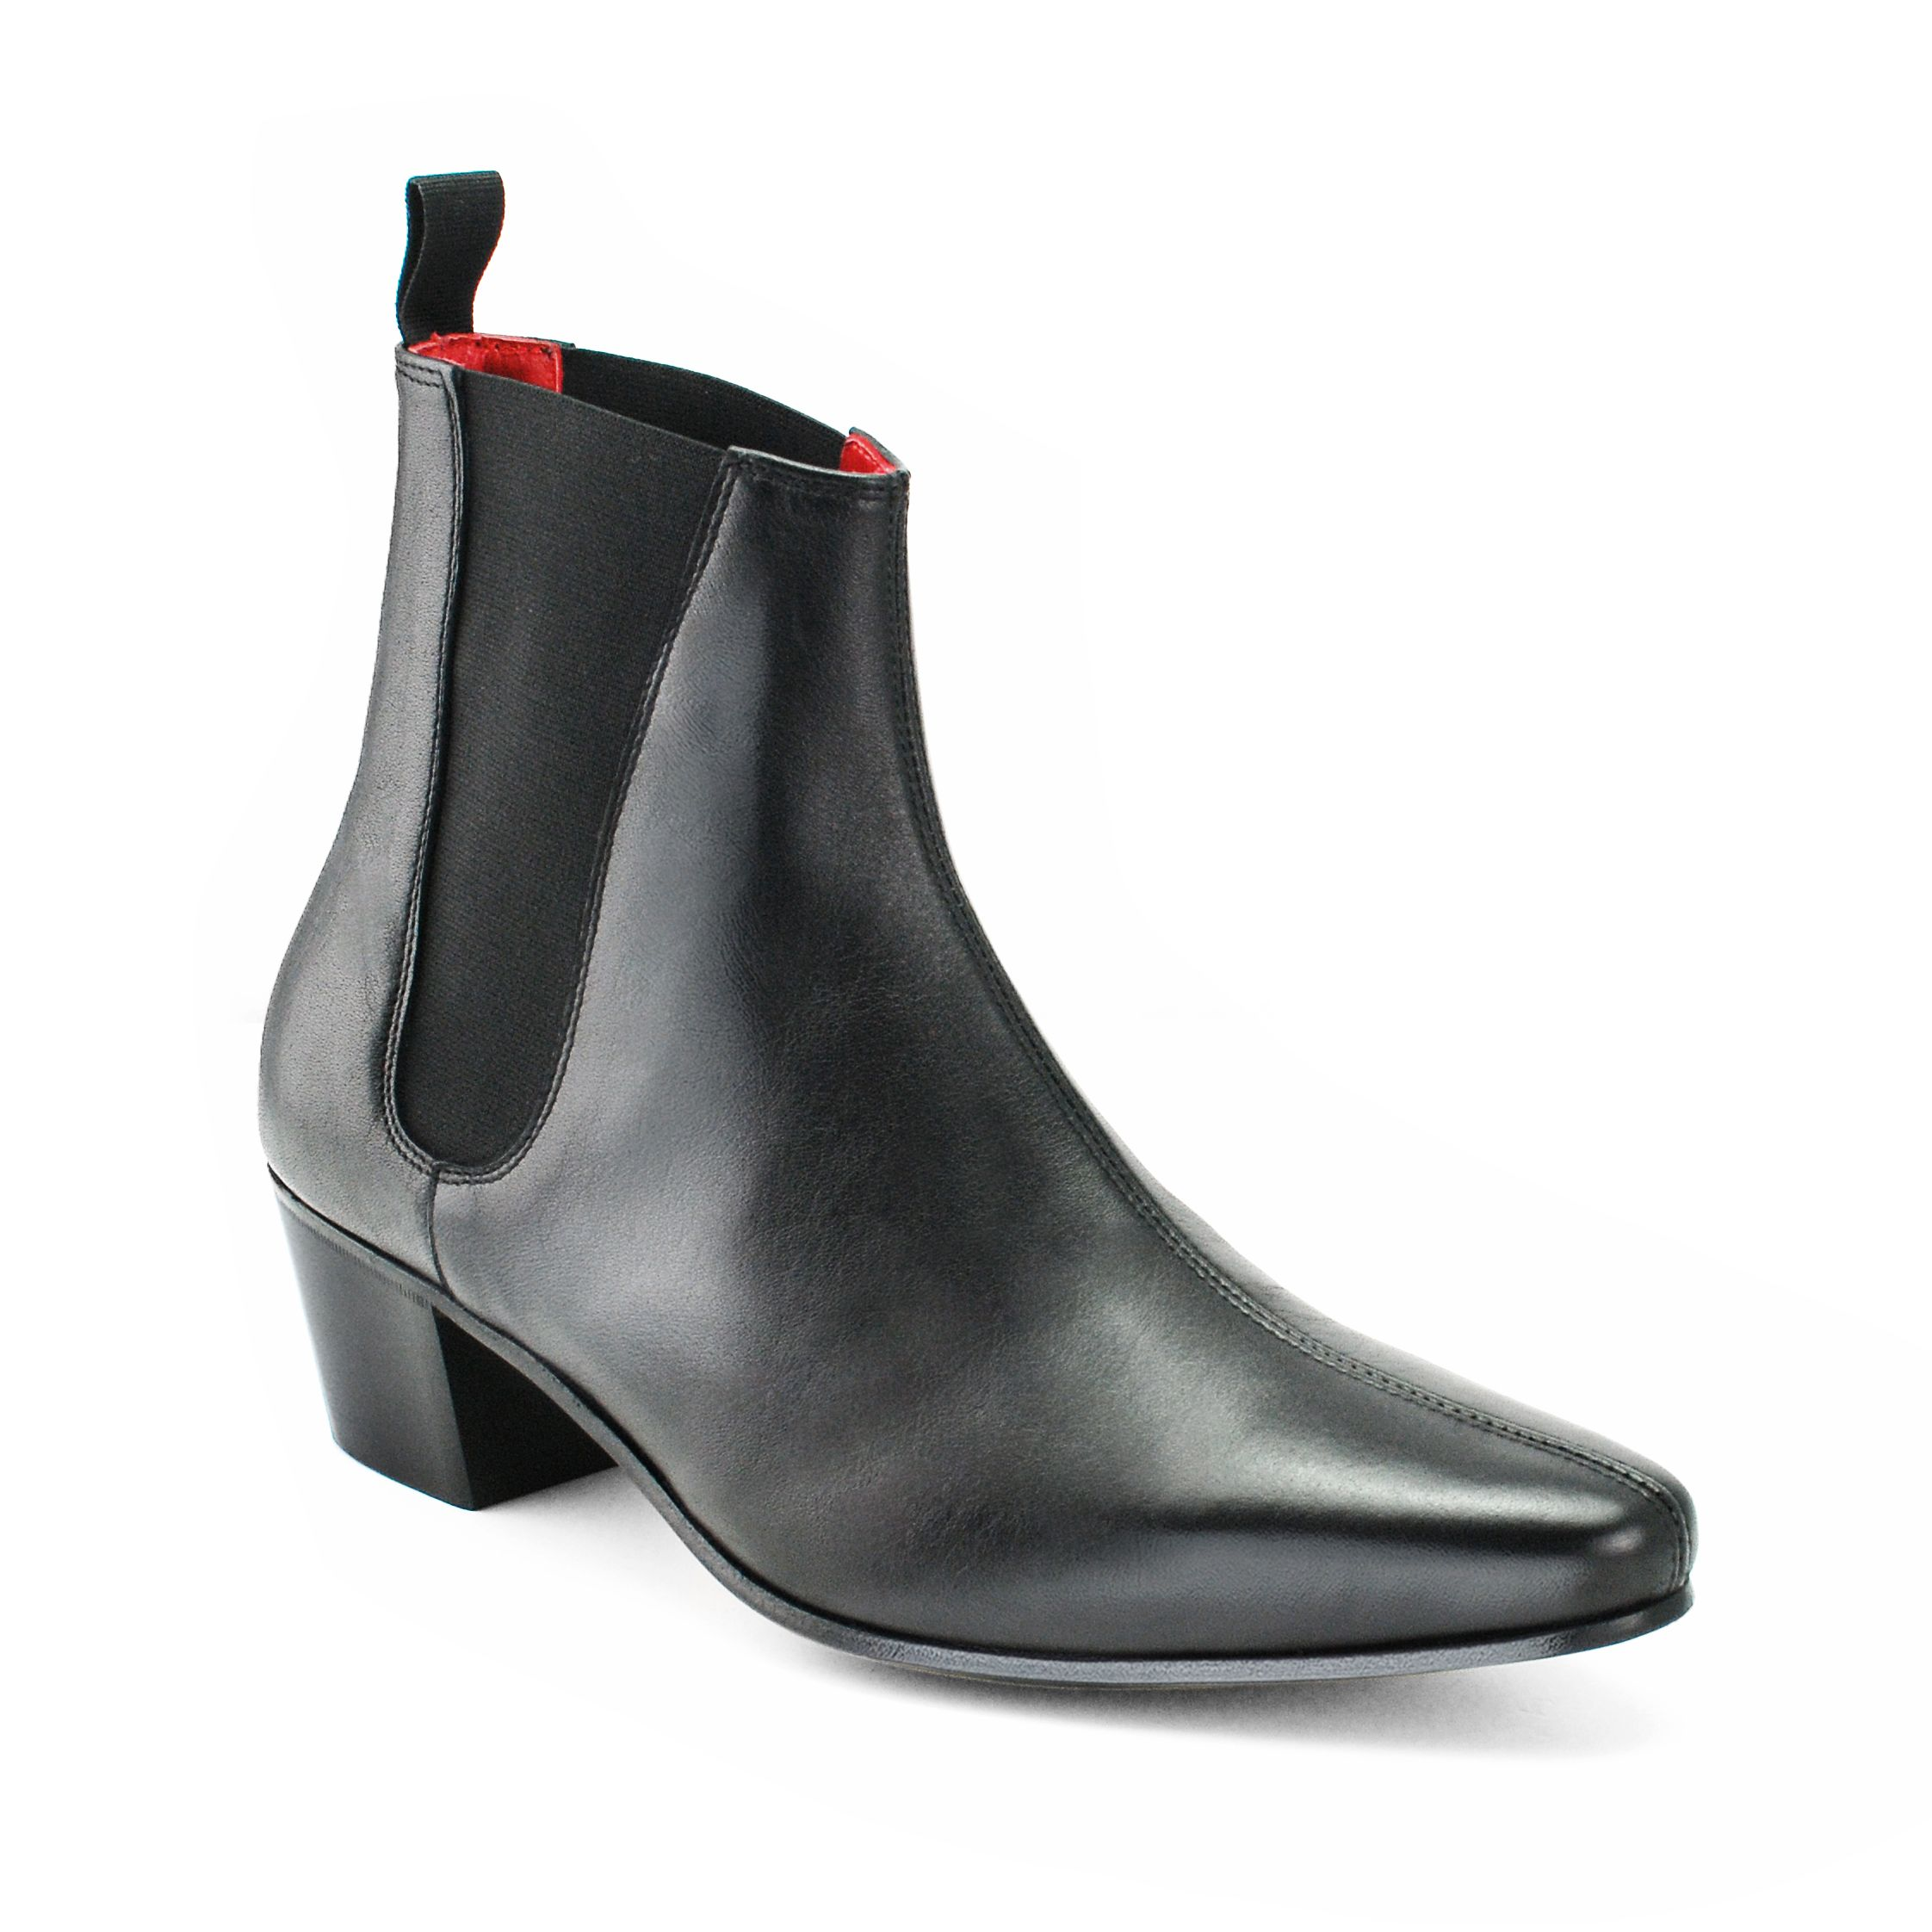 From The Beatwear Cavern Boot Collection The High Cavern Boot in Black Calf  Leather Premium Italian Calf Leather Finish UpperPull on ankle boot with ...